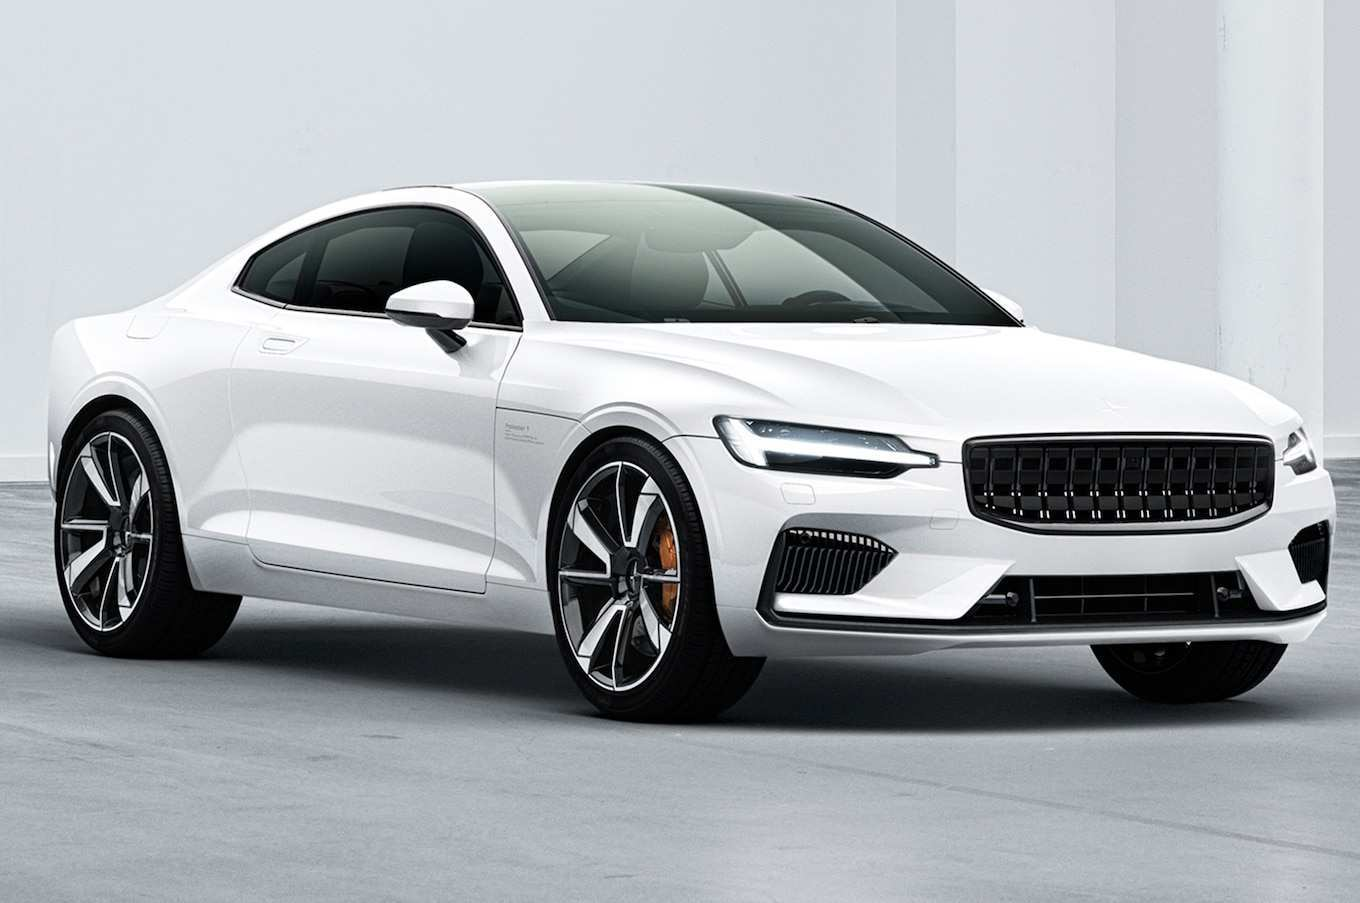 48 Best Review 2019 Volvo Polestar 1 Interior for 2019 Volvo Polestar 1